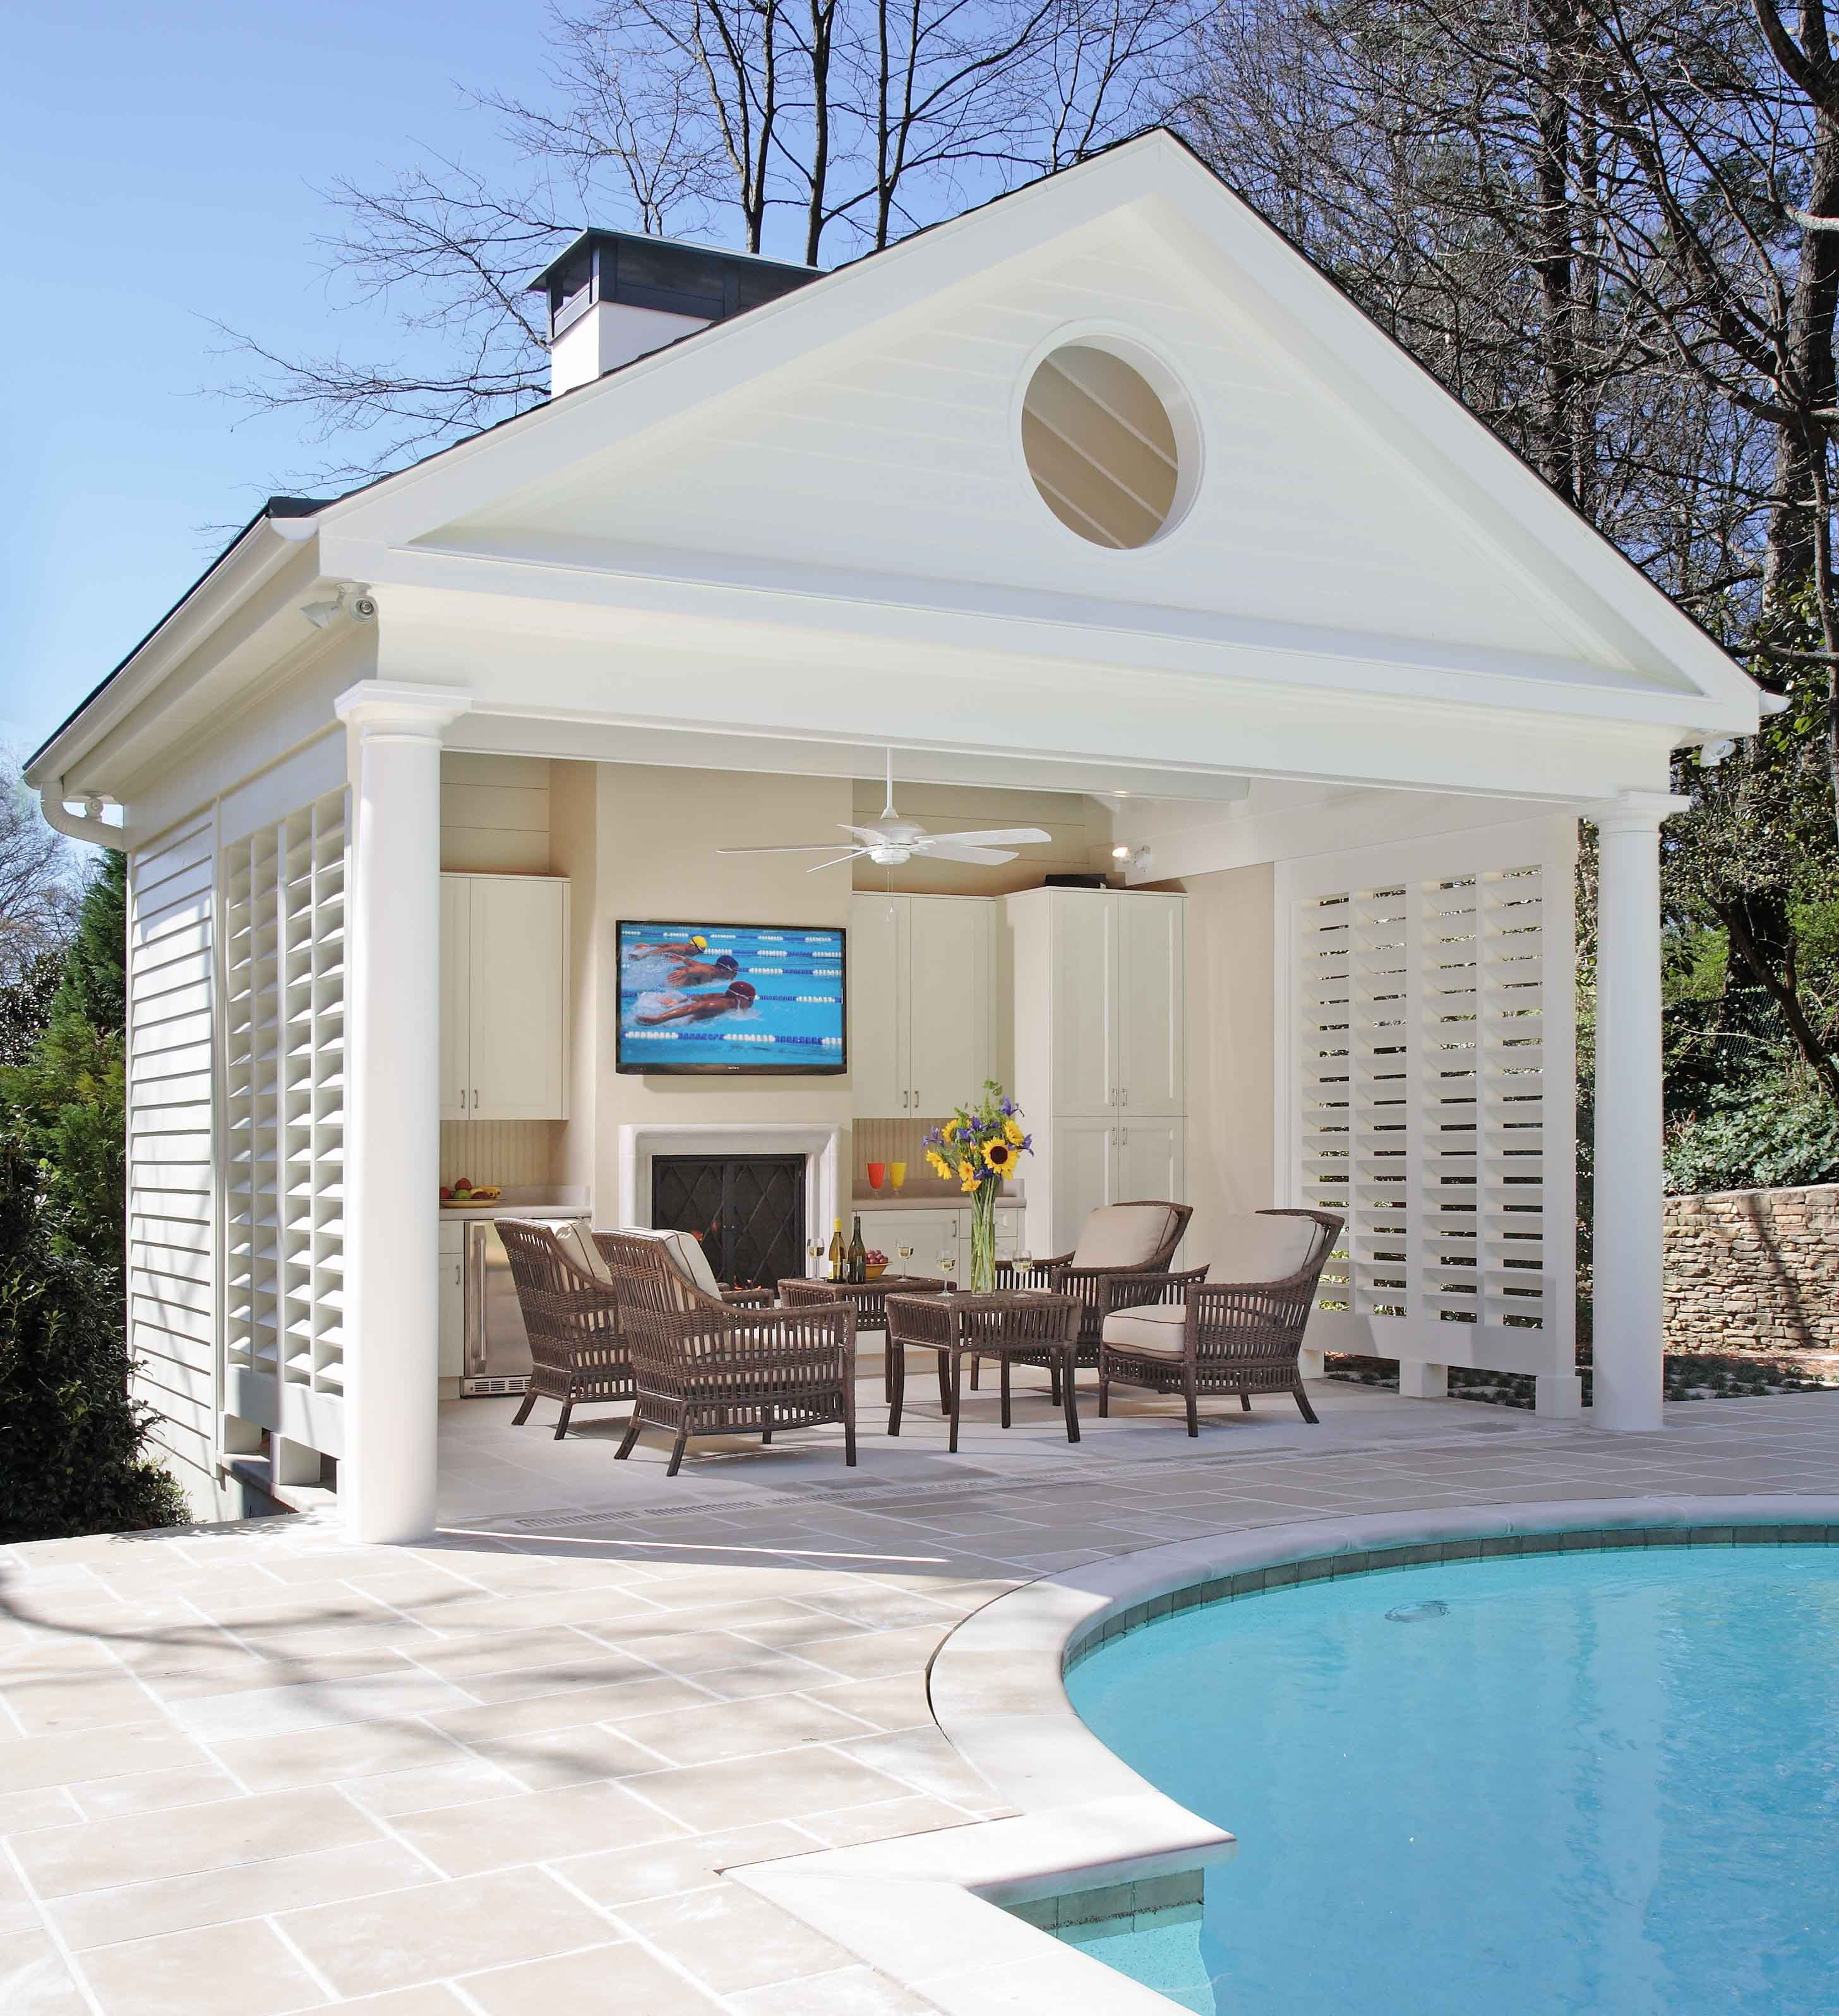 Luxury Cabana Pool House Design: Buckhead Pool And Cabana With Fireplace, Bahamian Shutters